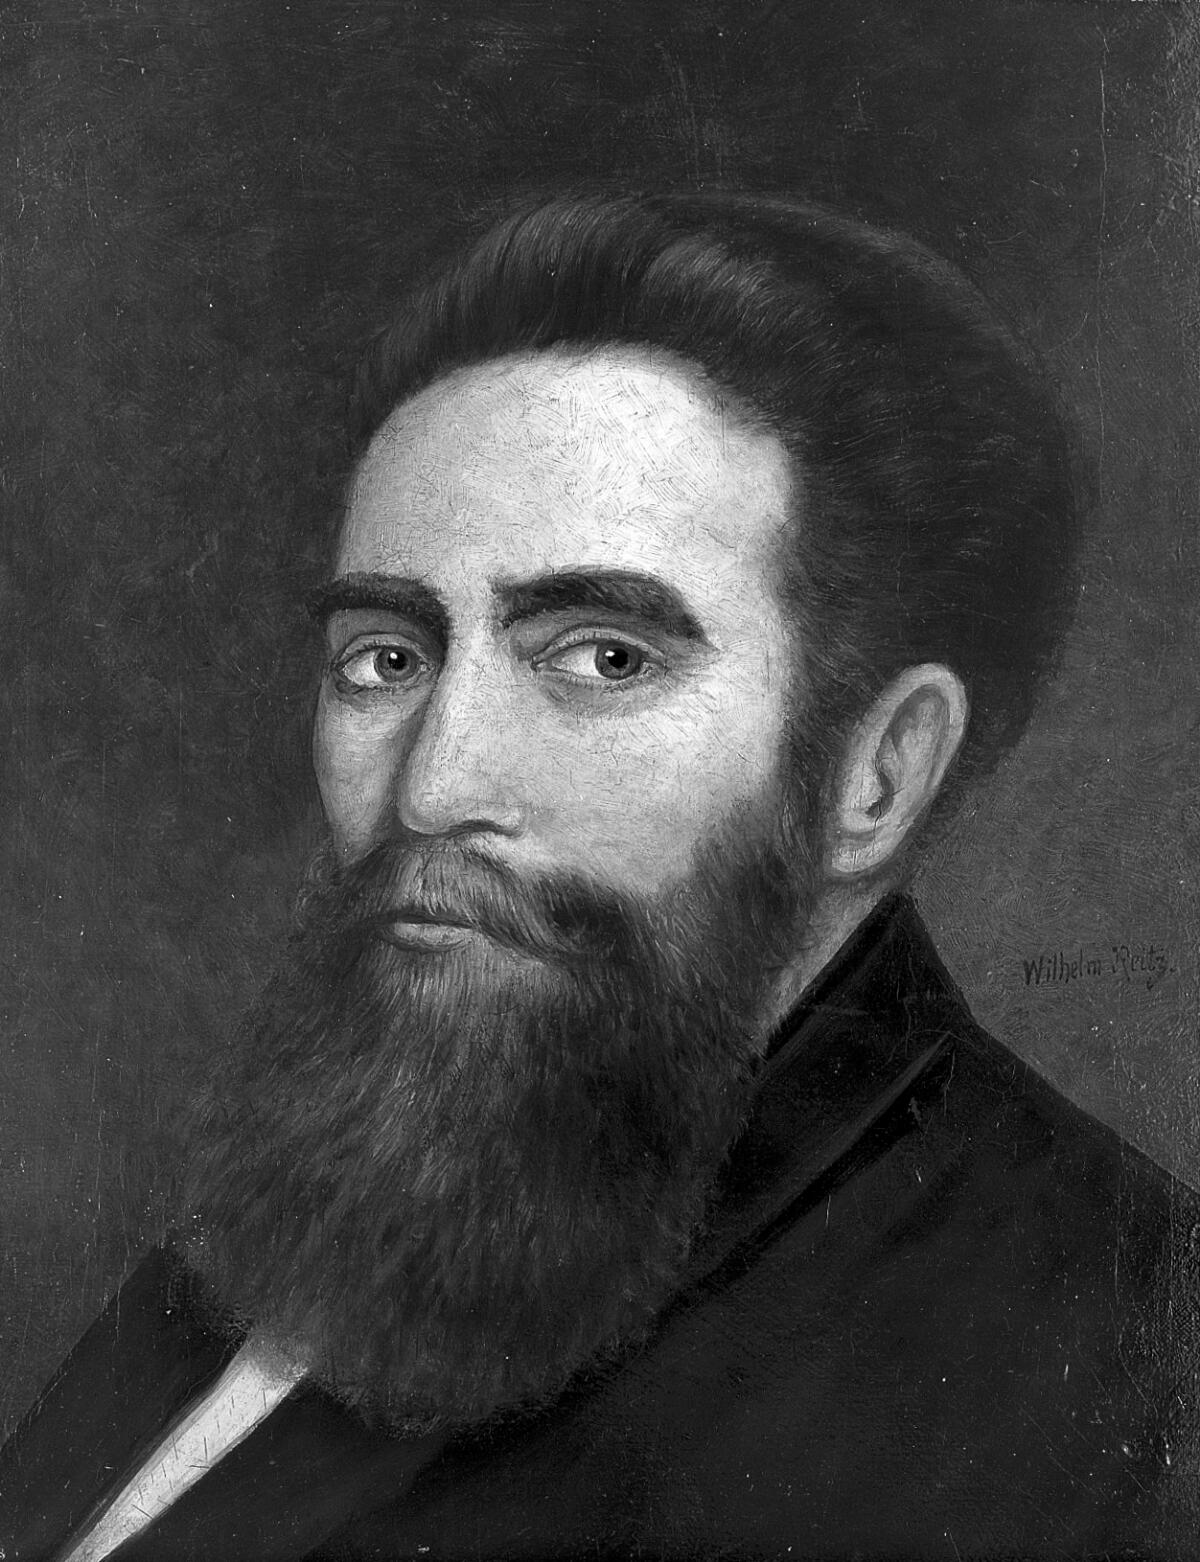 wilhelm conrad roentgen Wilhelm conrad röntgen - biographical wilhelm conrad röntgen was born on march 27, 1845, at lennep in the lower rhine province of germany, as the only child of a merchant in, and manufacturer of, cloth.